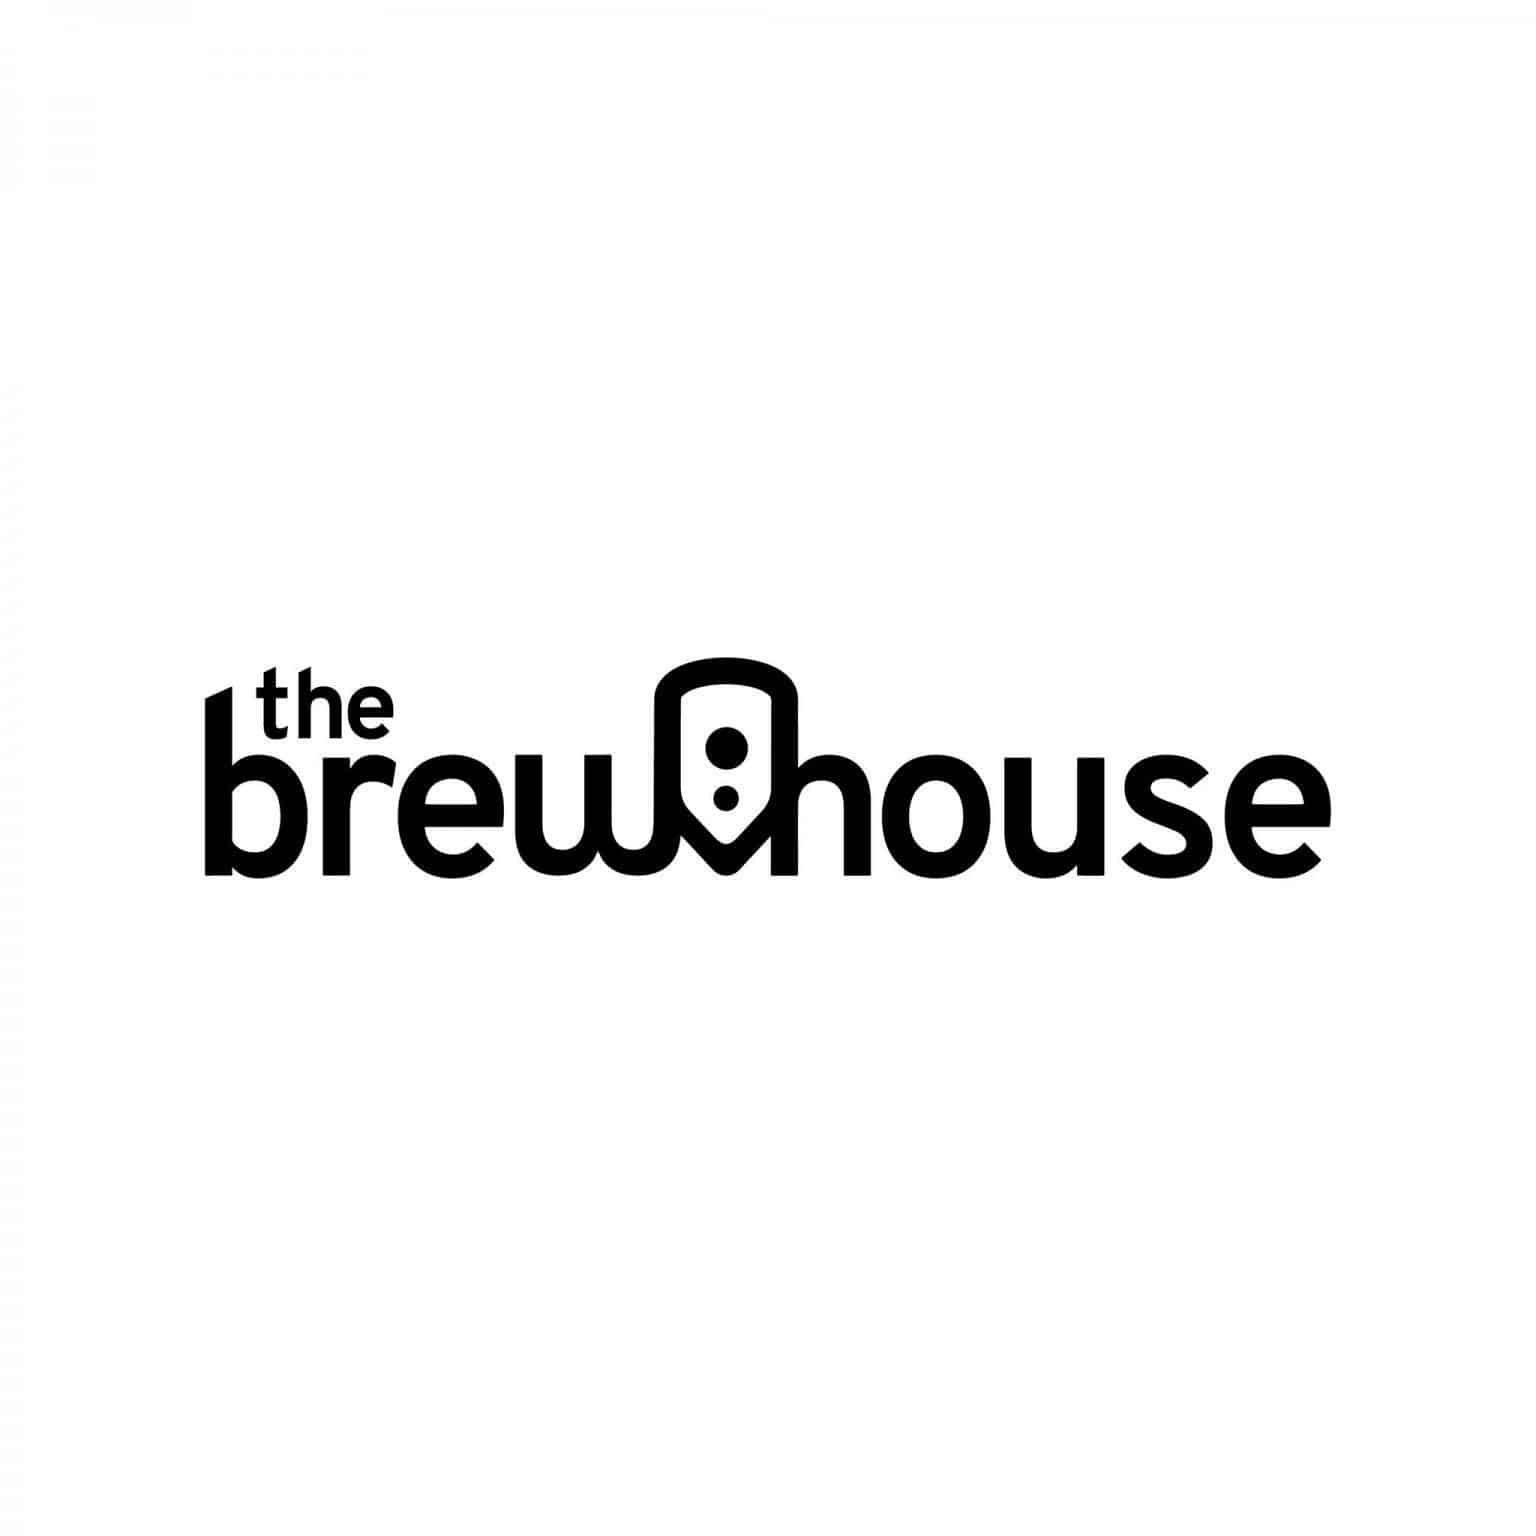 thebrewhouse